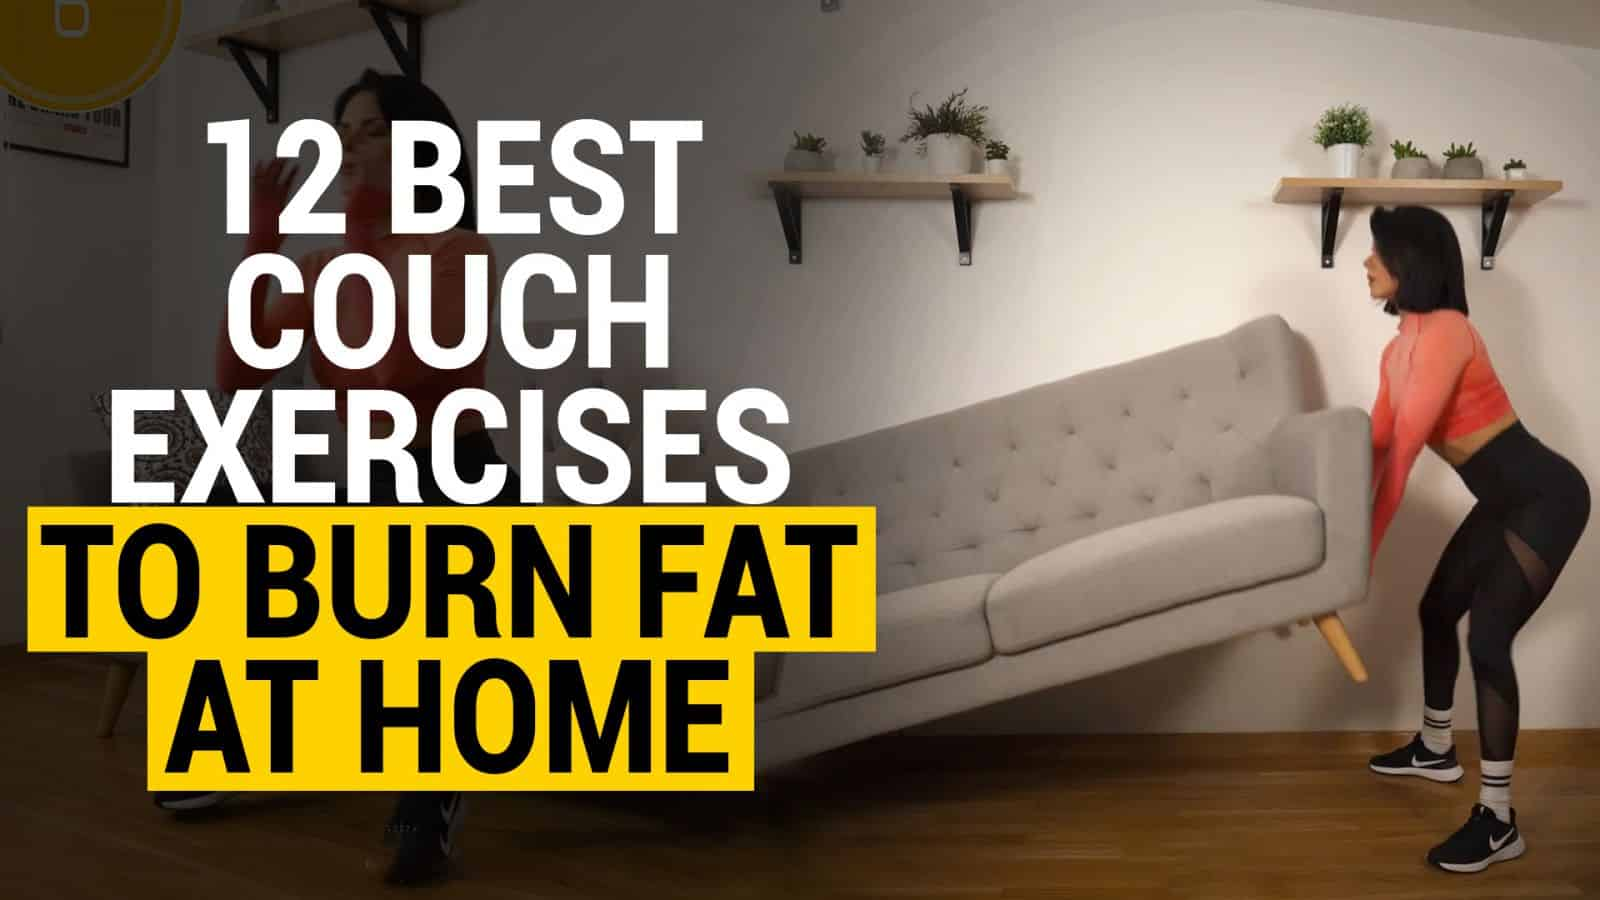 couch exercises